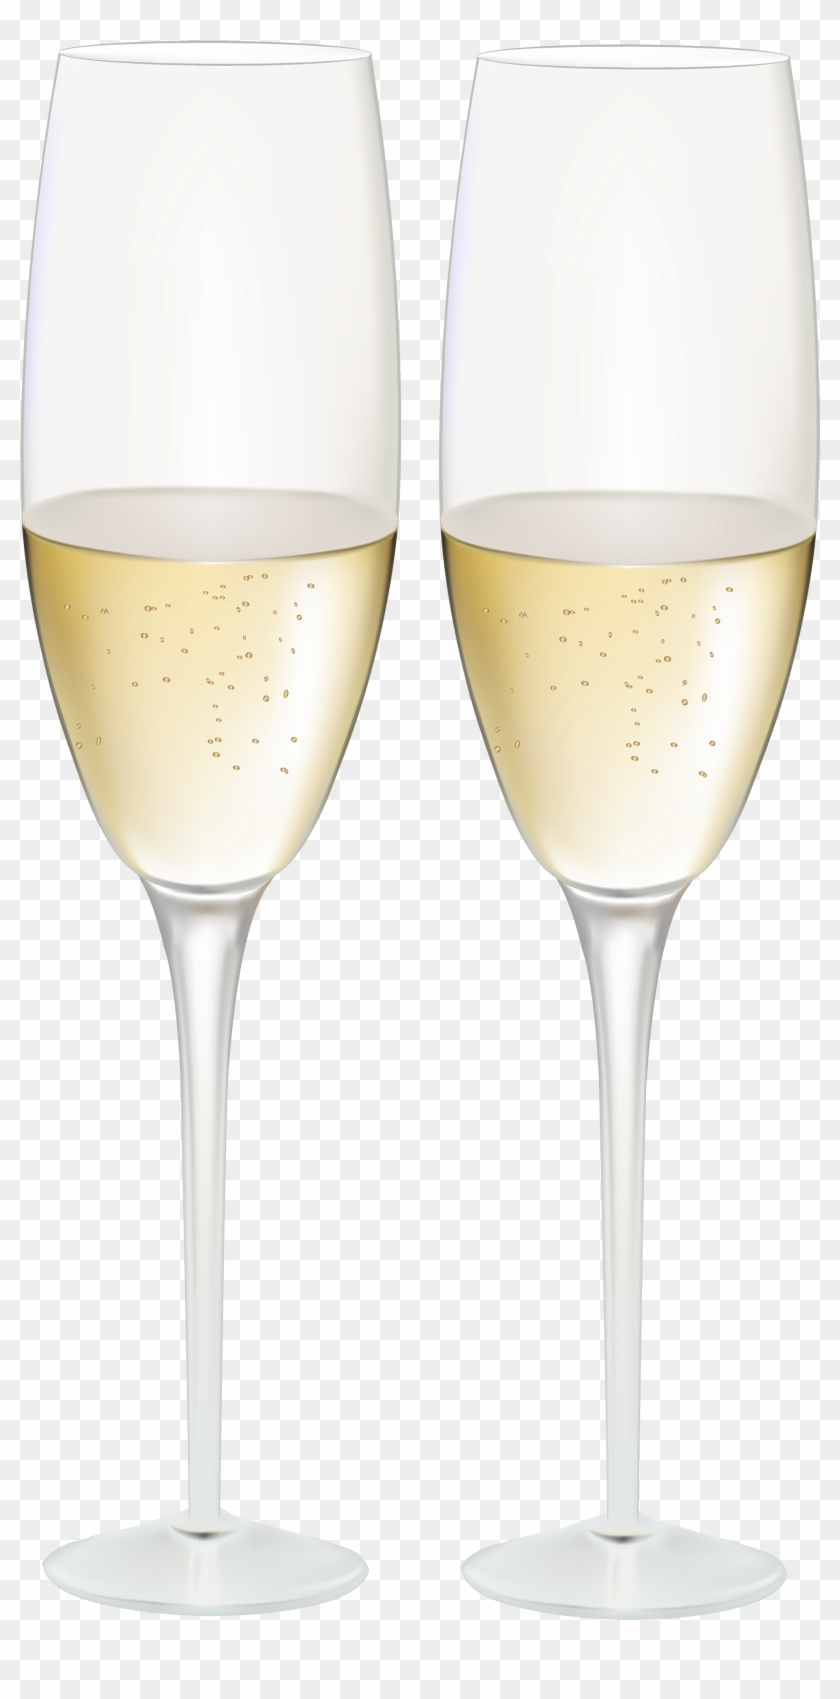 hight resolution of champagne glasses png clipart champagne glasses png 206994